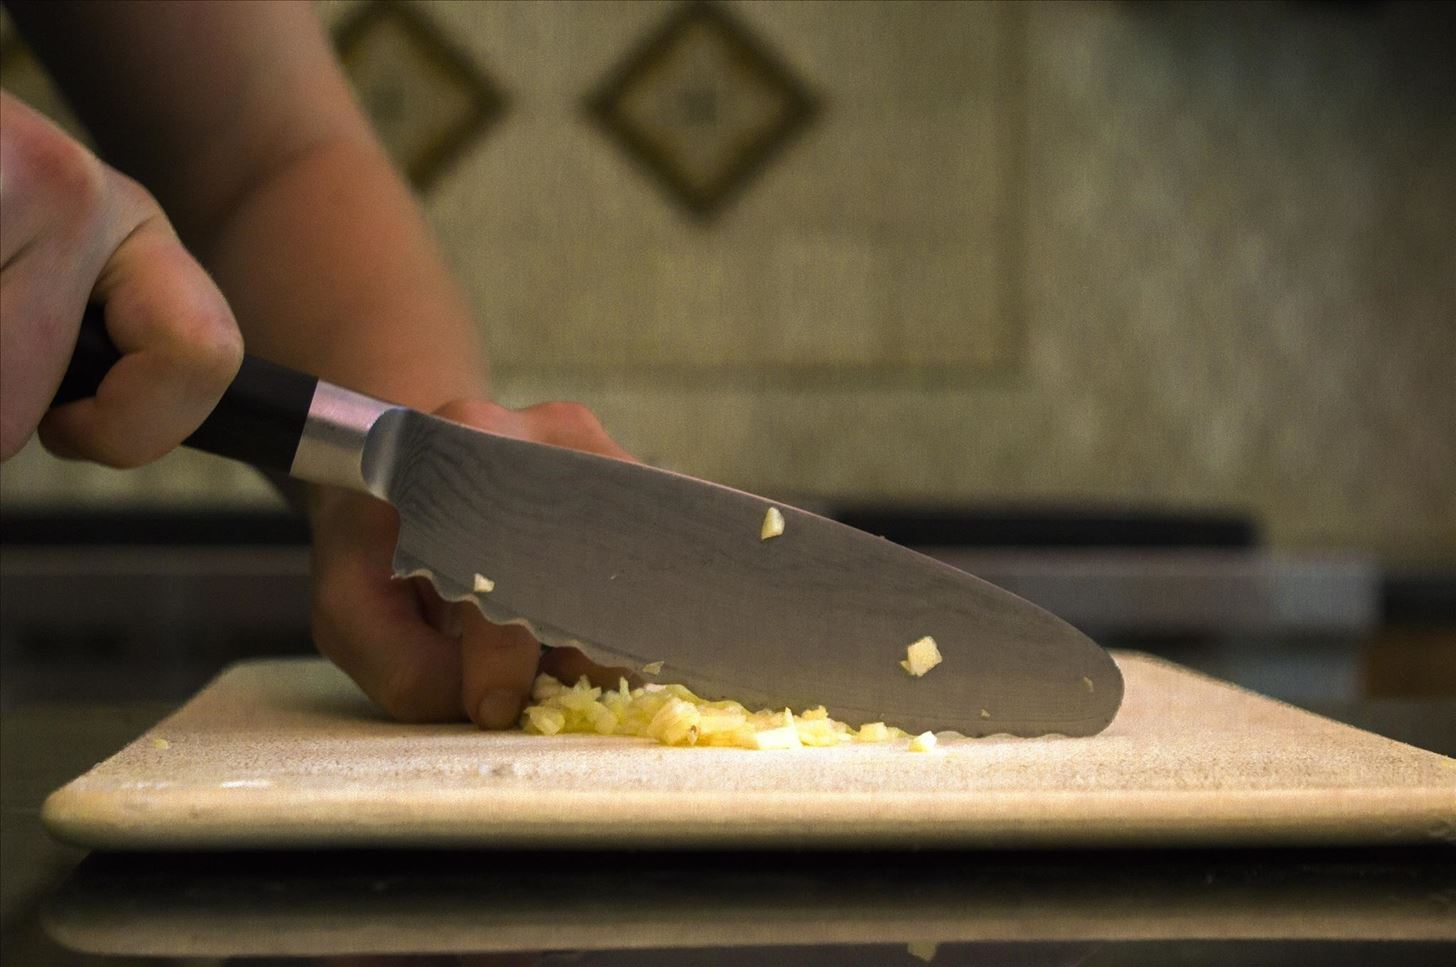 Food Tool Friday: One Knife to Rule Them All